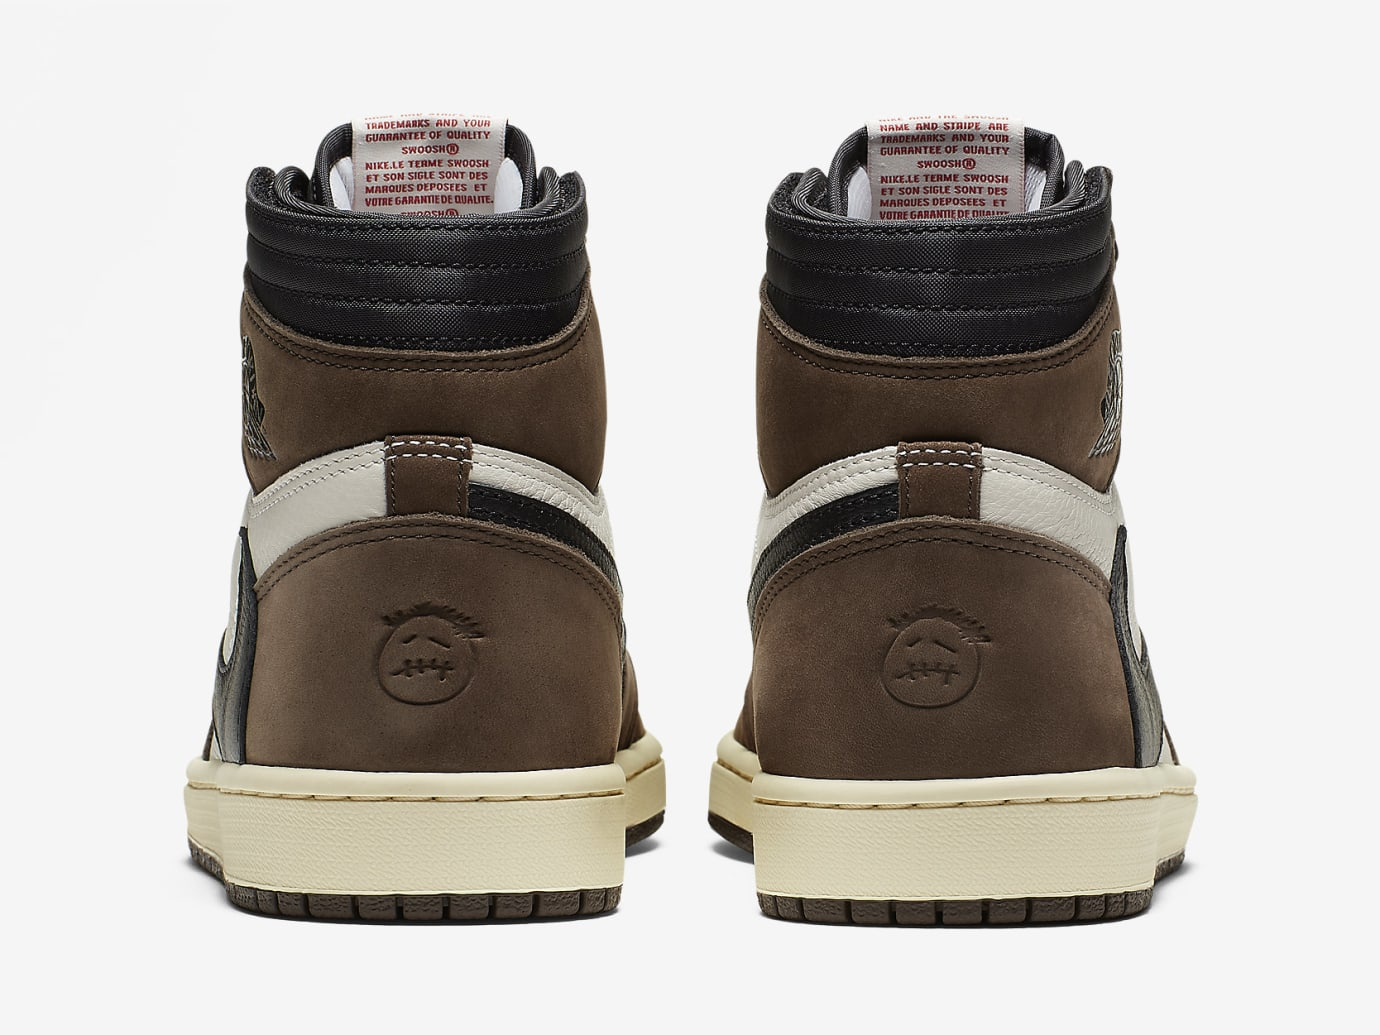 e97bf516 Image via Nike Travis Scott x Air Jordan 1 Brown Release Date CD4487-100  Heel